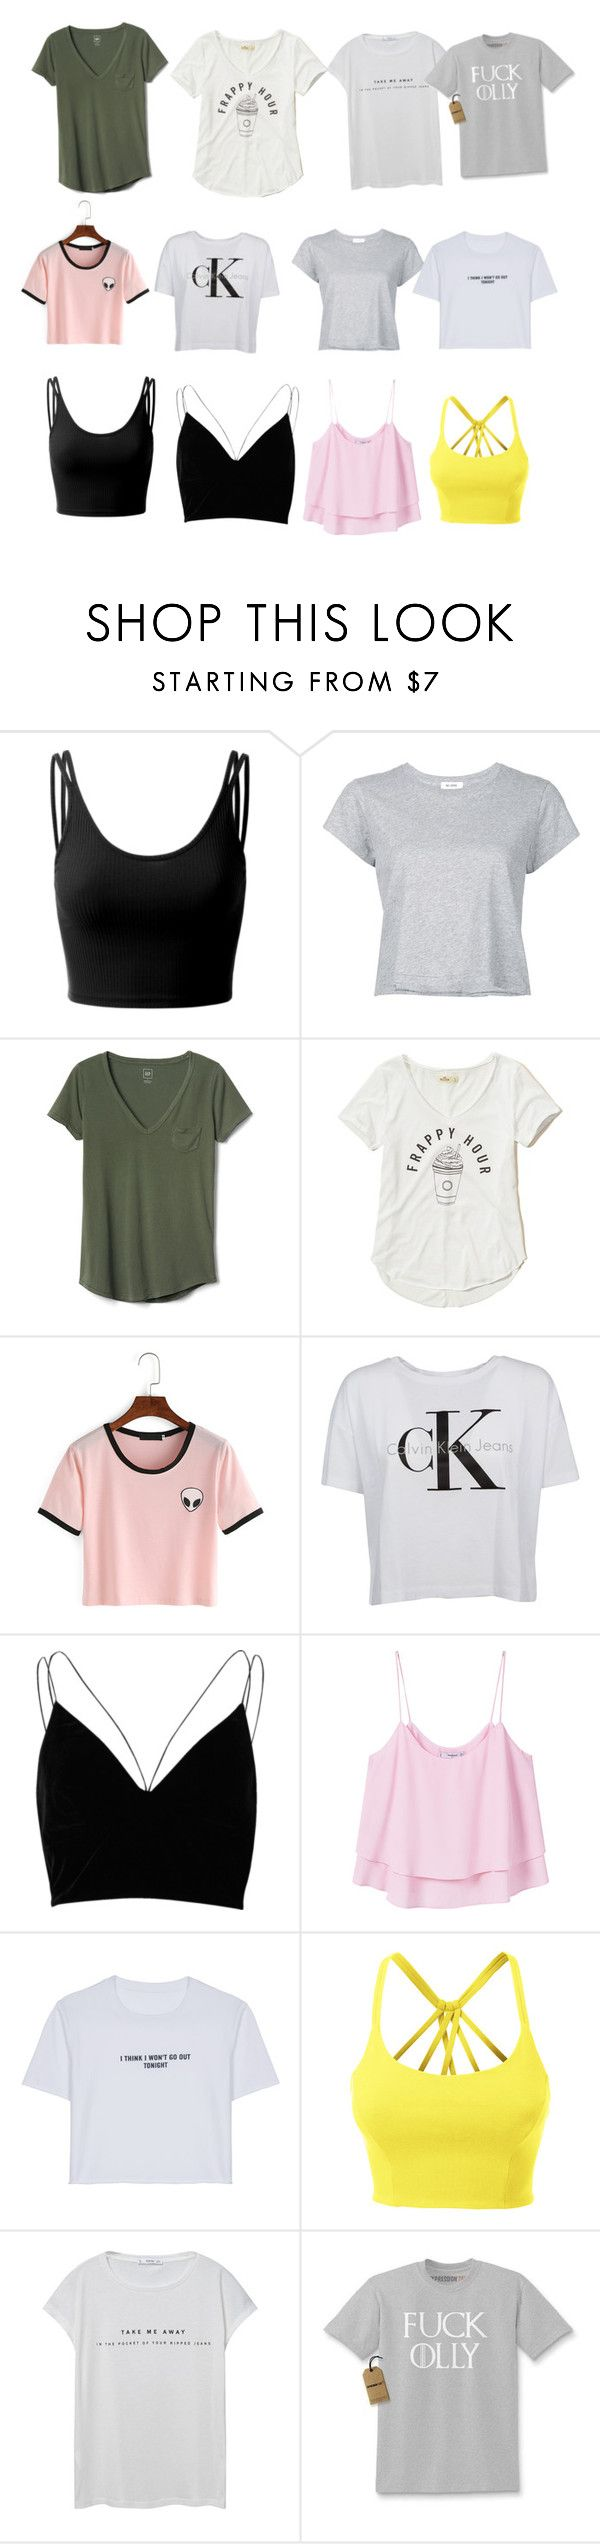 """Untitled #276"" by timcaaa on Polyvore featuring Doublju, RE/DONE, Gap, Hollister Co., Calvin Klein, River Island, MANGO, WithChic and LE3NO"